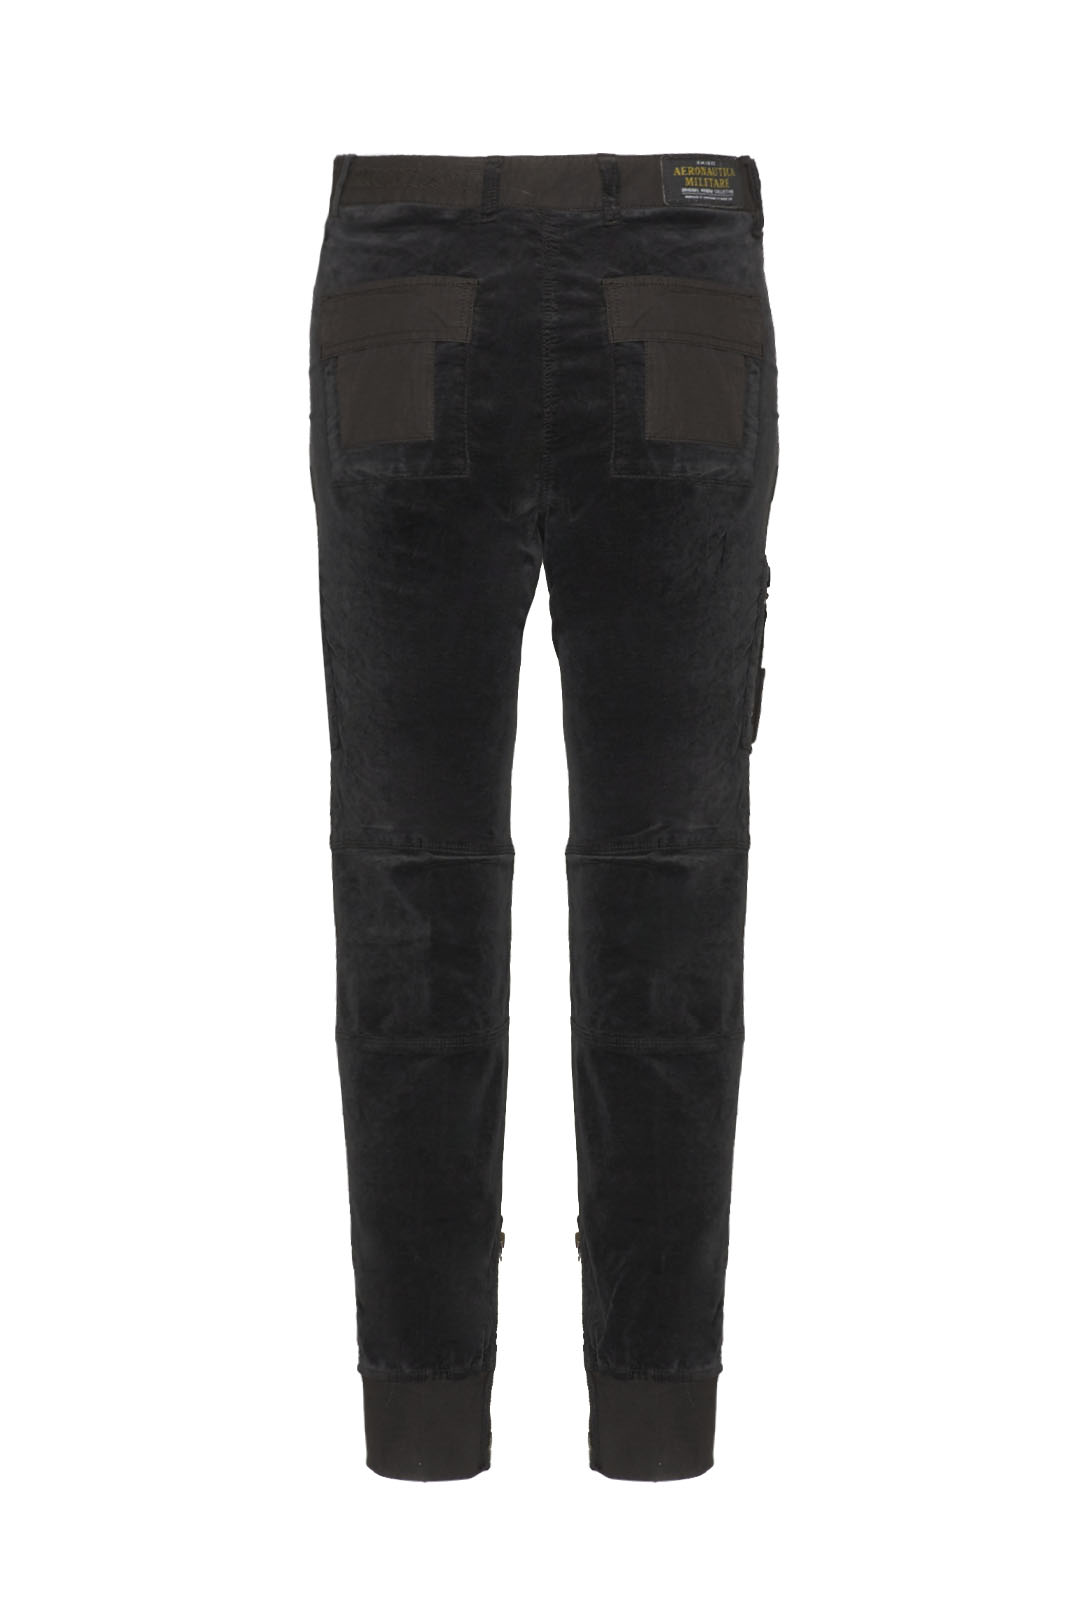 Iconic velvet and ripstop Anti-G pants   2